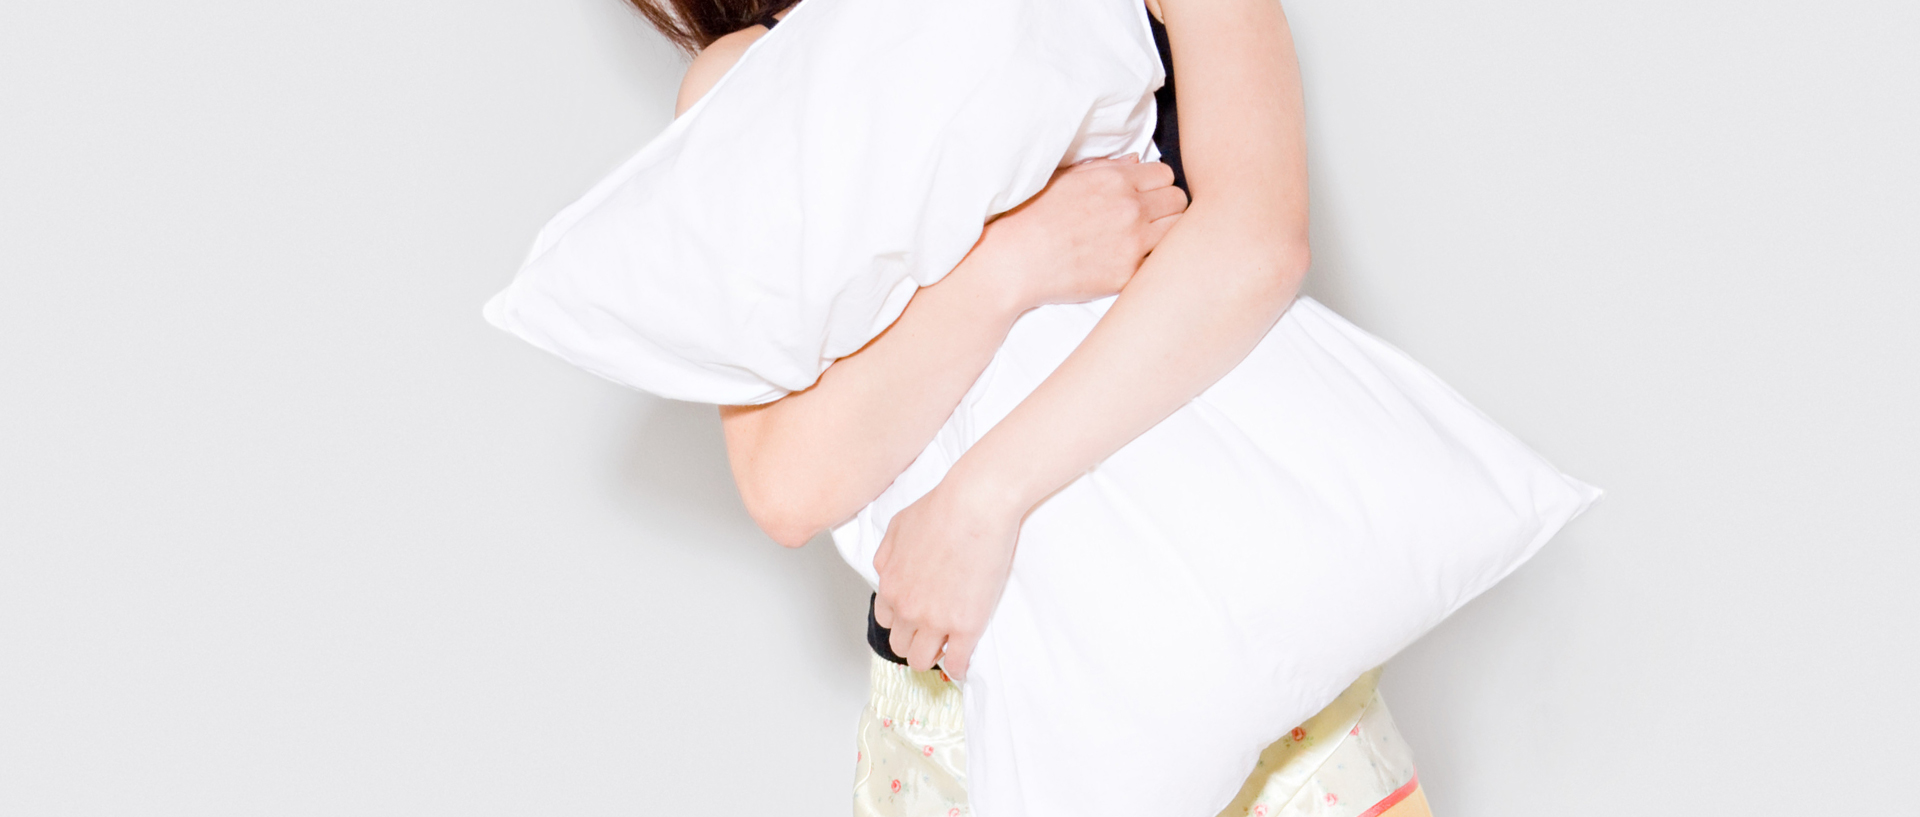 The Best Pillow for a Good Night's Sleep Consumer Reports #985533